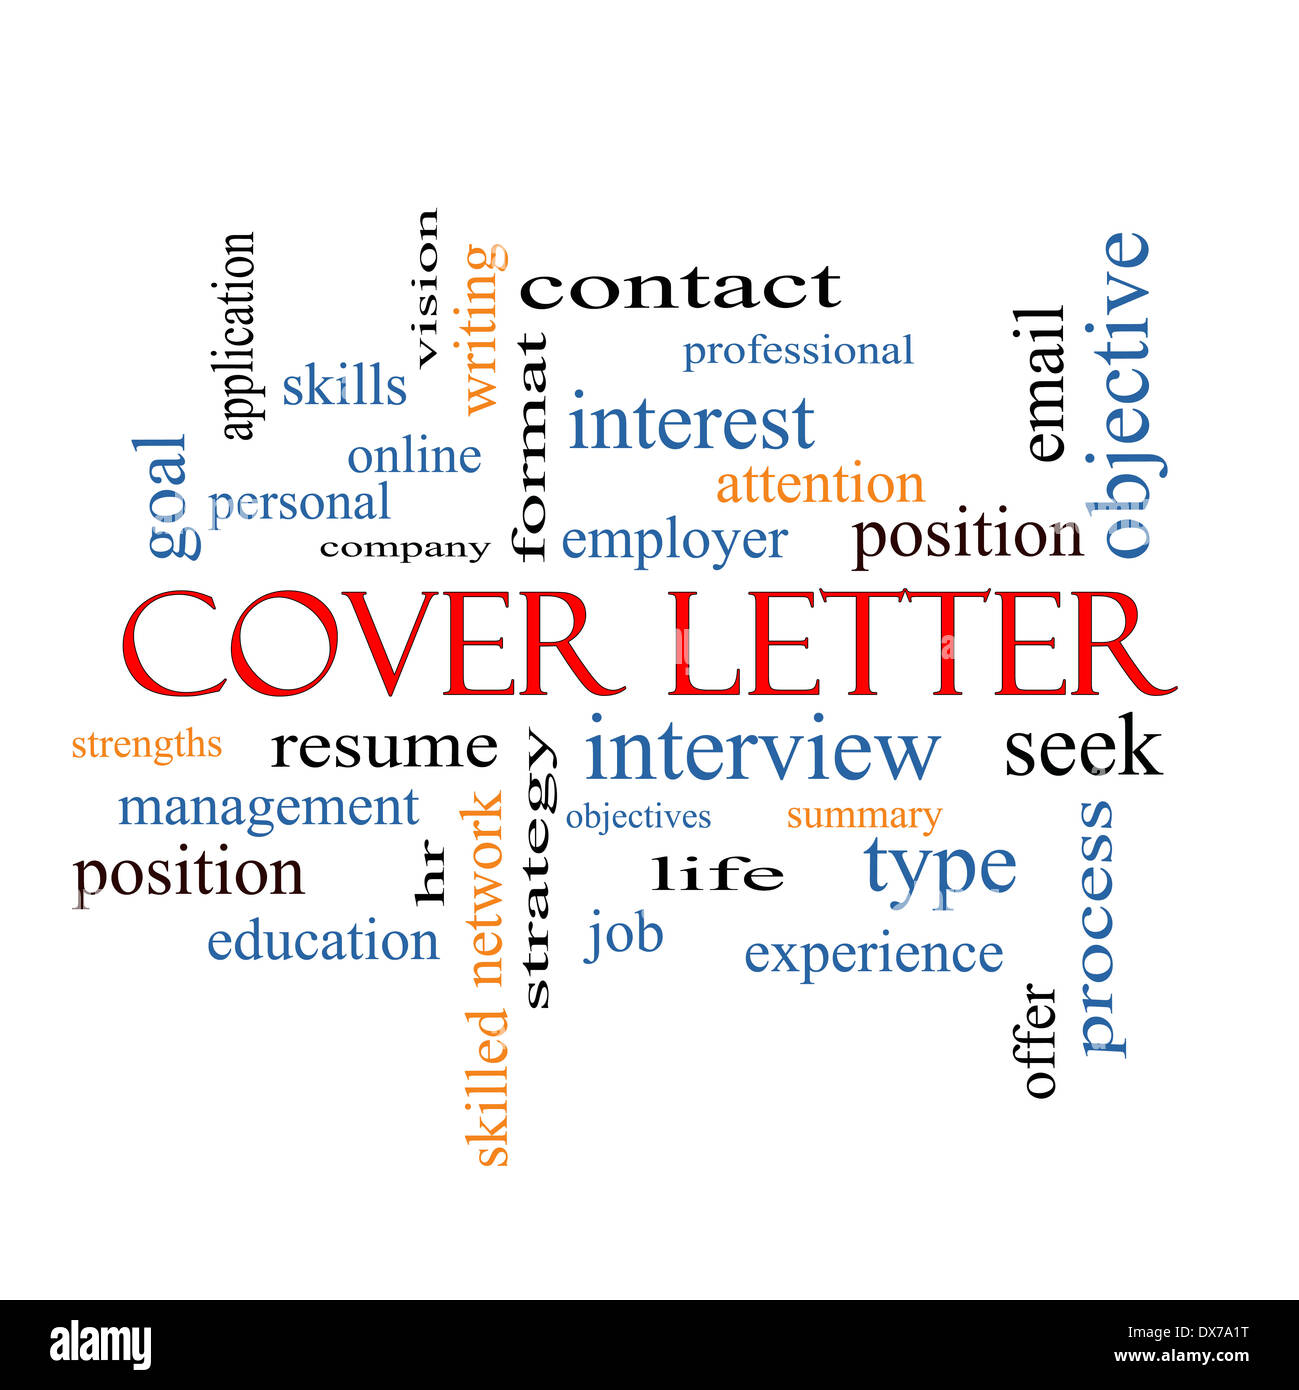 Cover Letter Word Cloud Concept With Great Terms Such As Interview Resume Summary And More Stock Photo Alamy